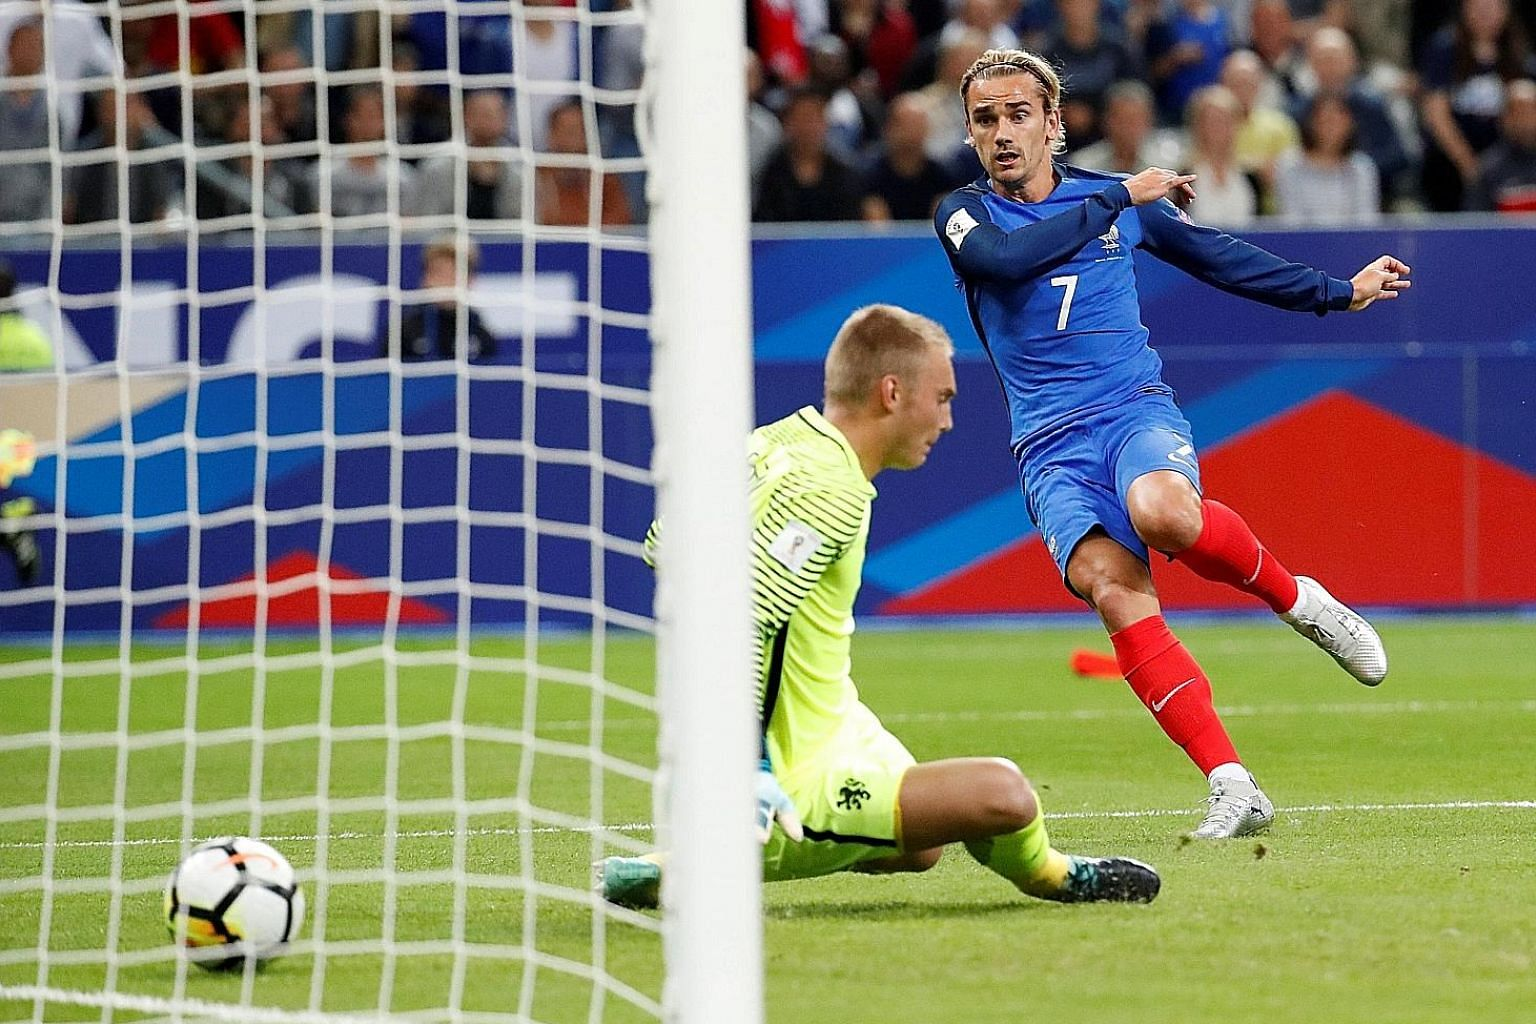 Left: Antoine Griezmann scores France's first goal past Dutch custodian Jasper Cillessen. Below: France midfielder Thomas Lemar celebrating one of his two goals, as his team cemented top spot in their qualifying group with the 4-0 win.